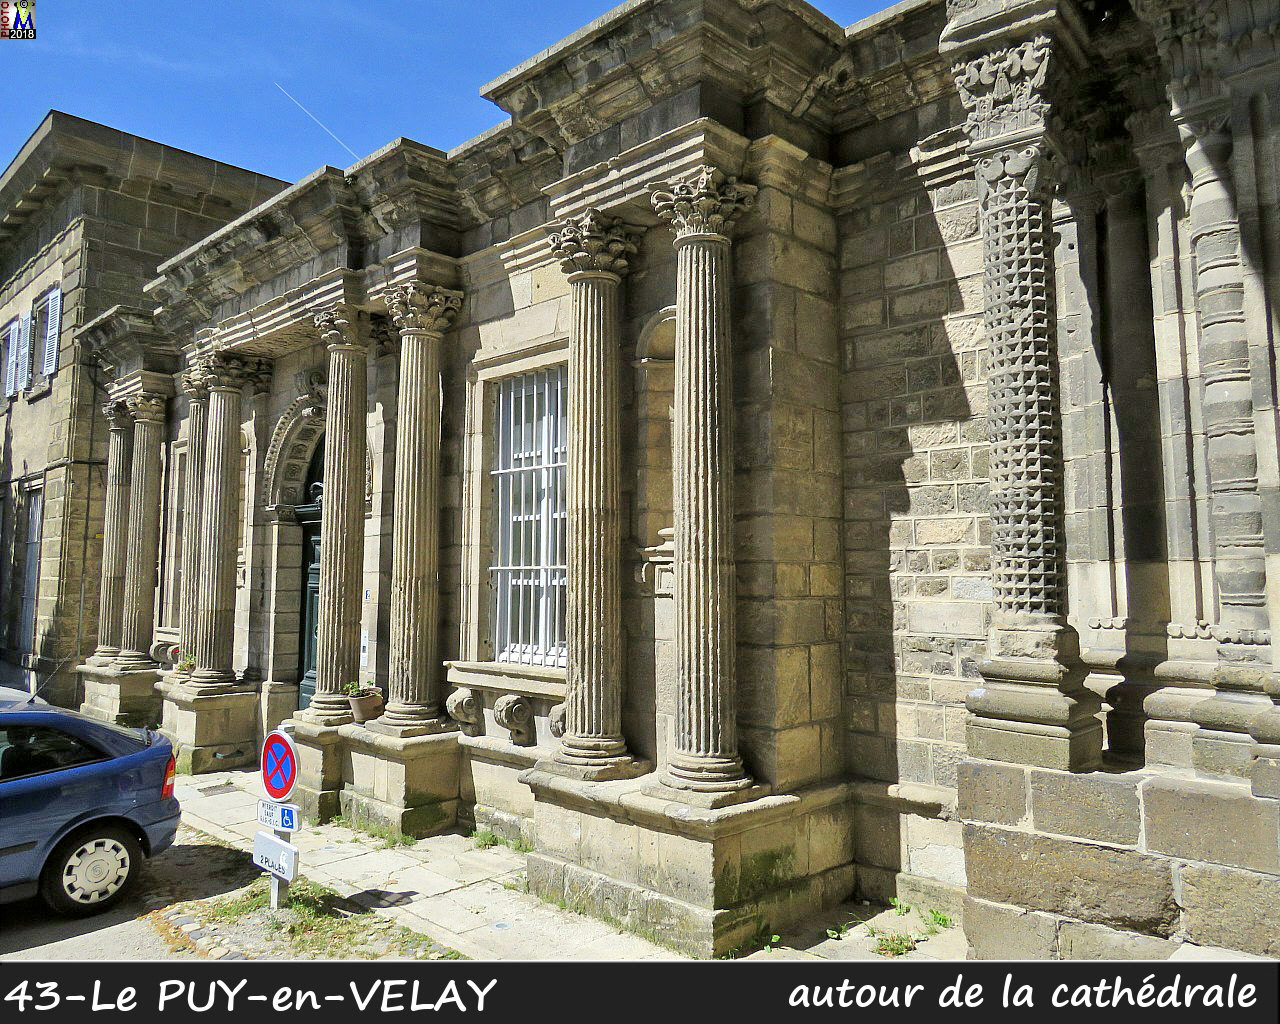 43PUY-EN-VELAY_cathedrale_400.jpg